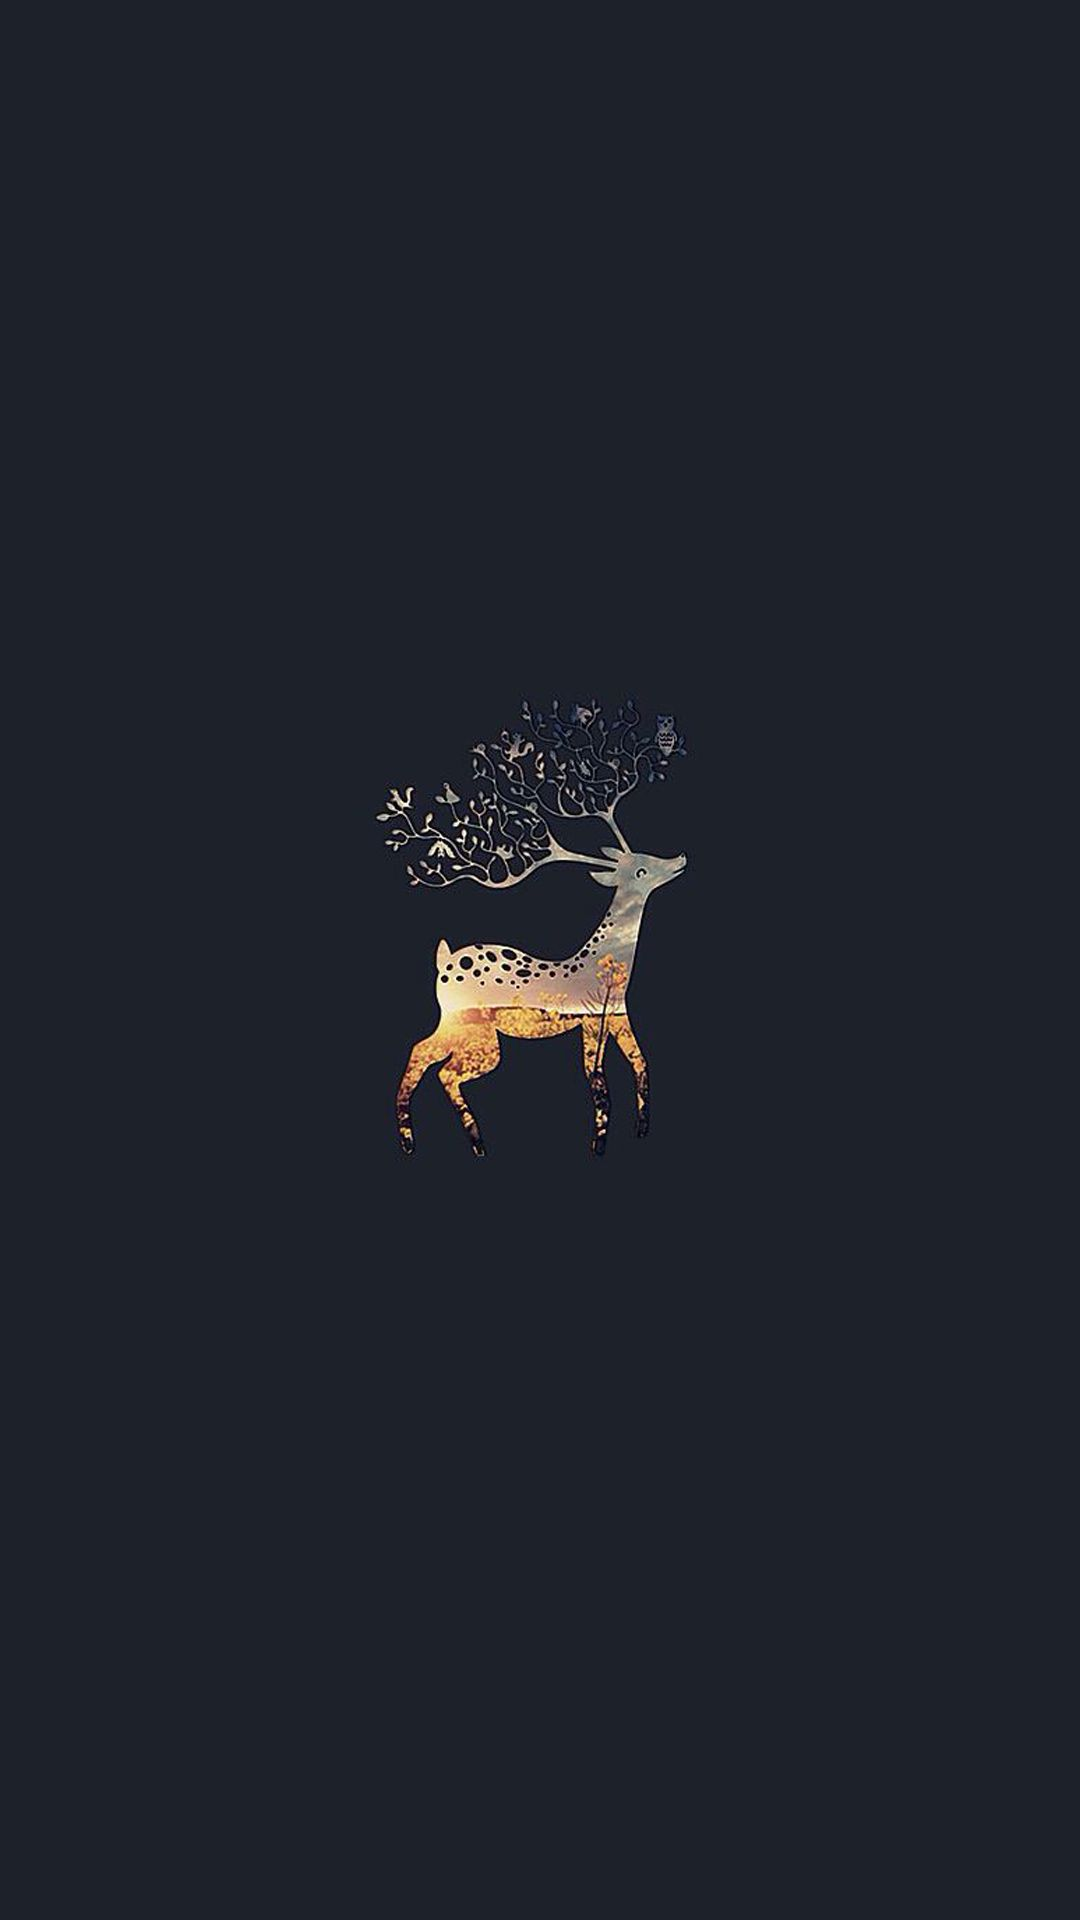 Deer branch horns iphone 6 wallpaper iphone 6 8 - Christmas iphone backgrounds tumblr ...